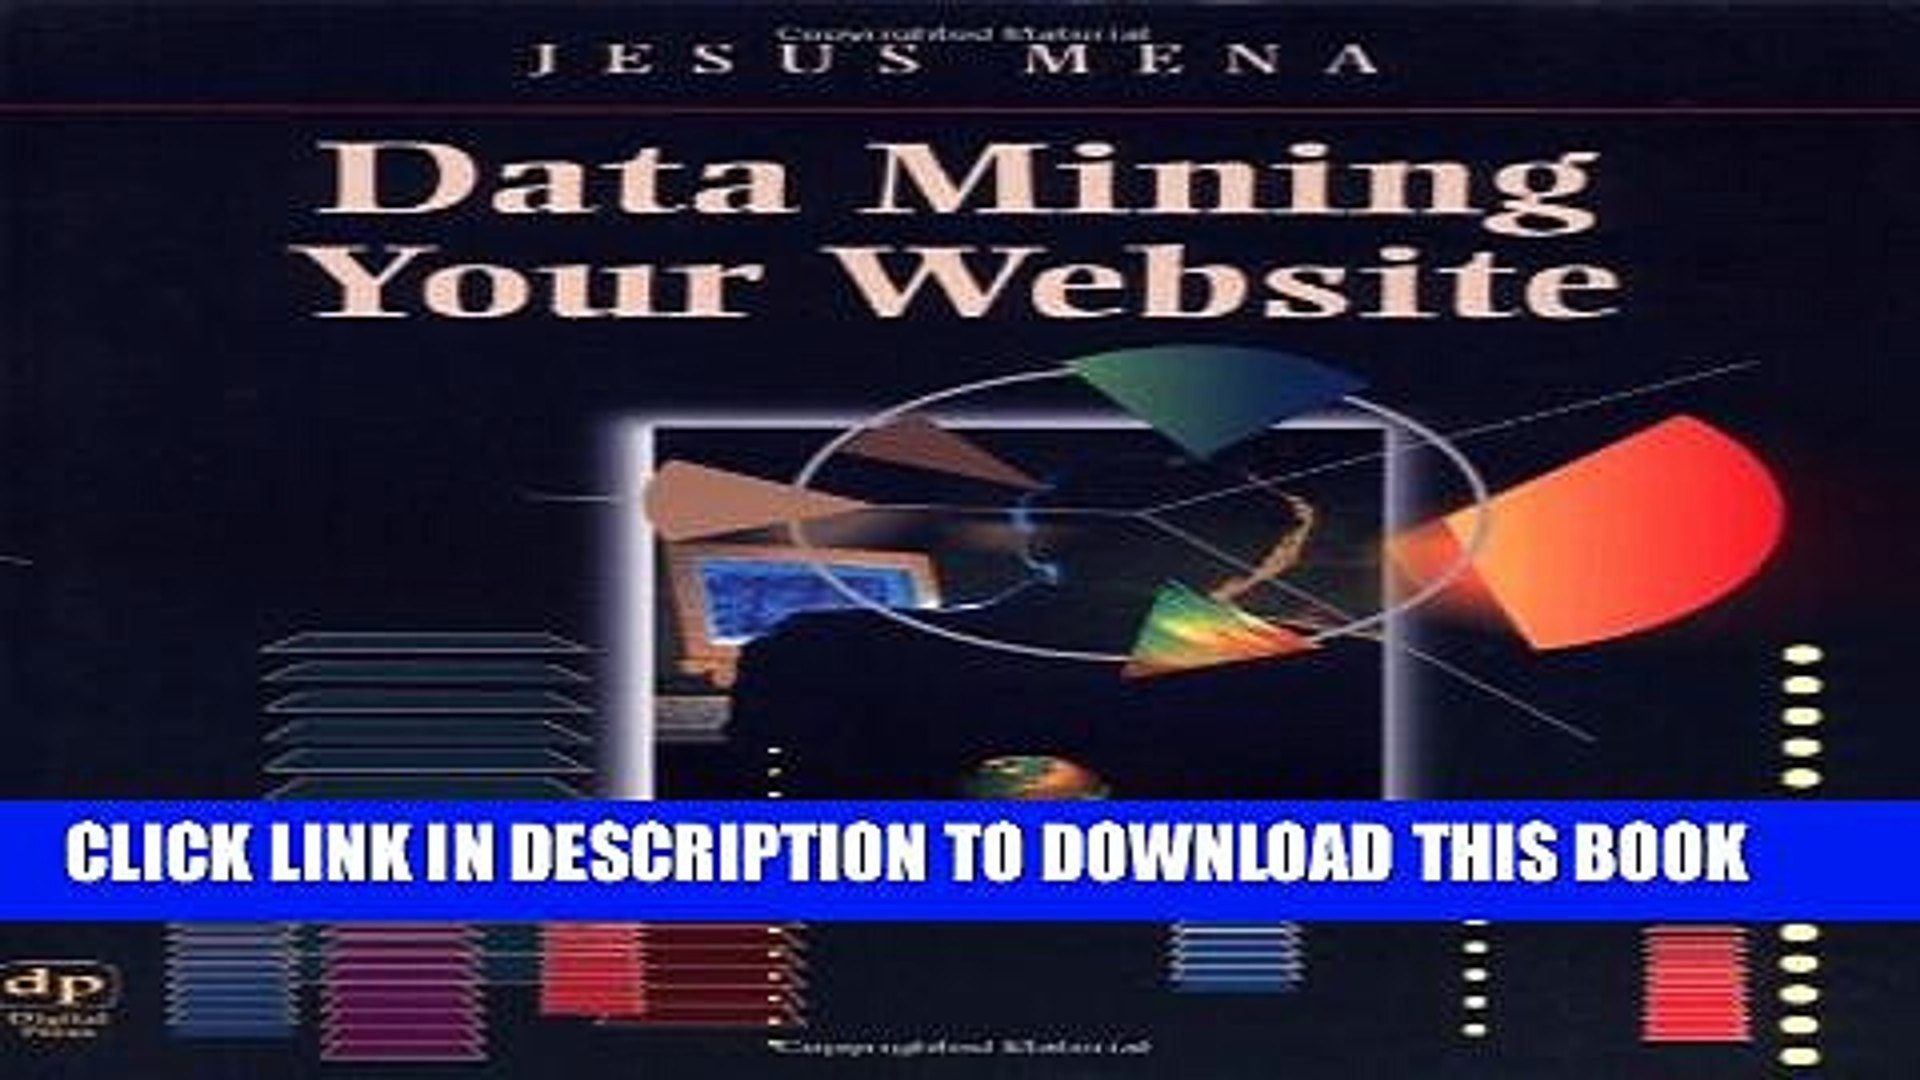 Data mining your website